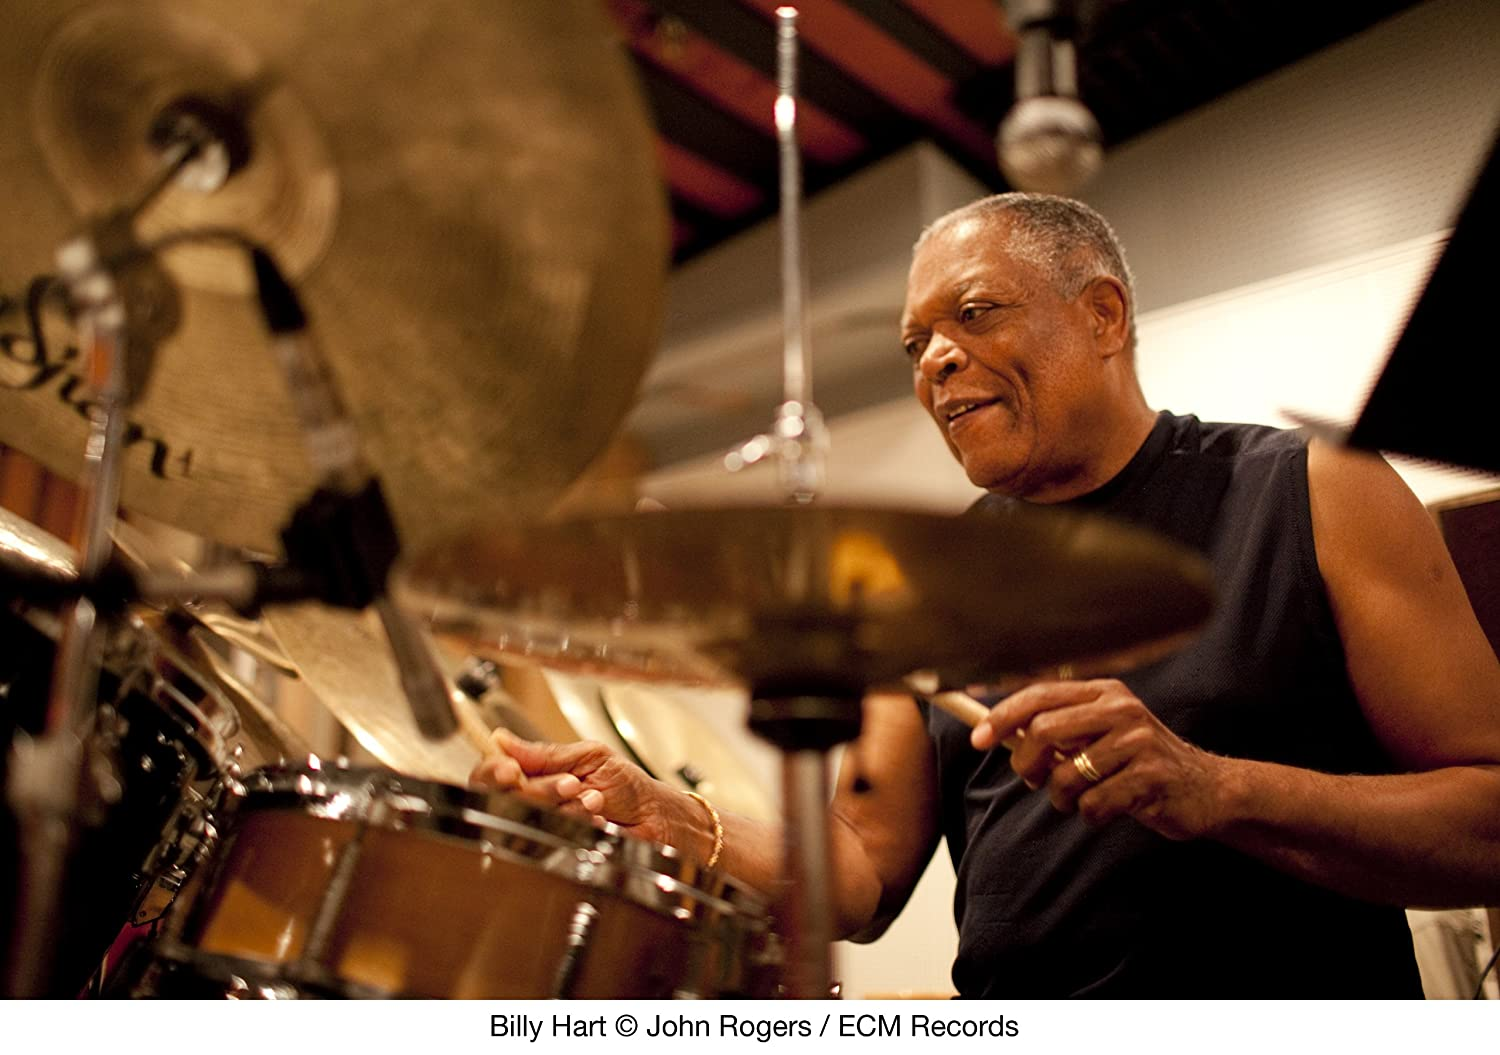 Billy hart no money | Sex images)